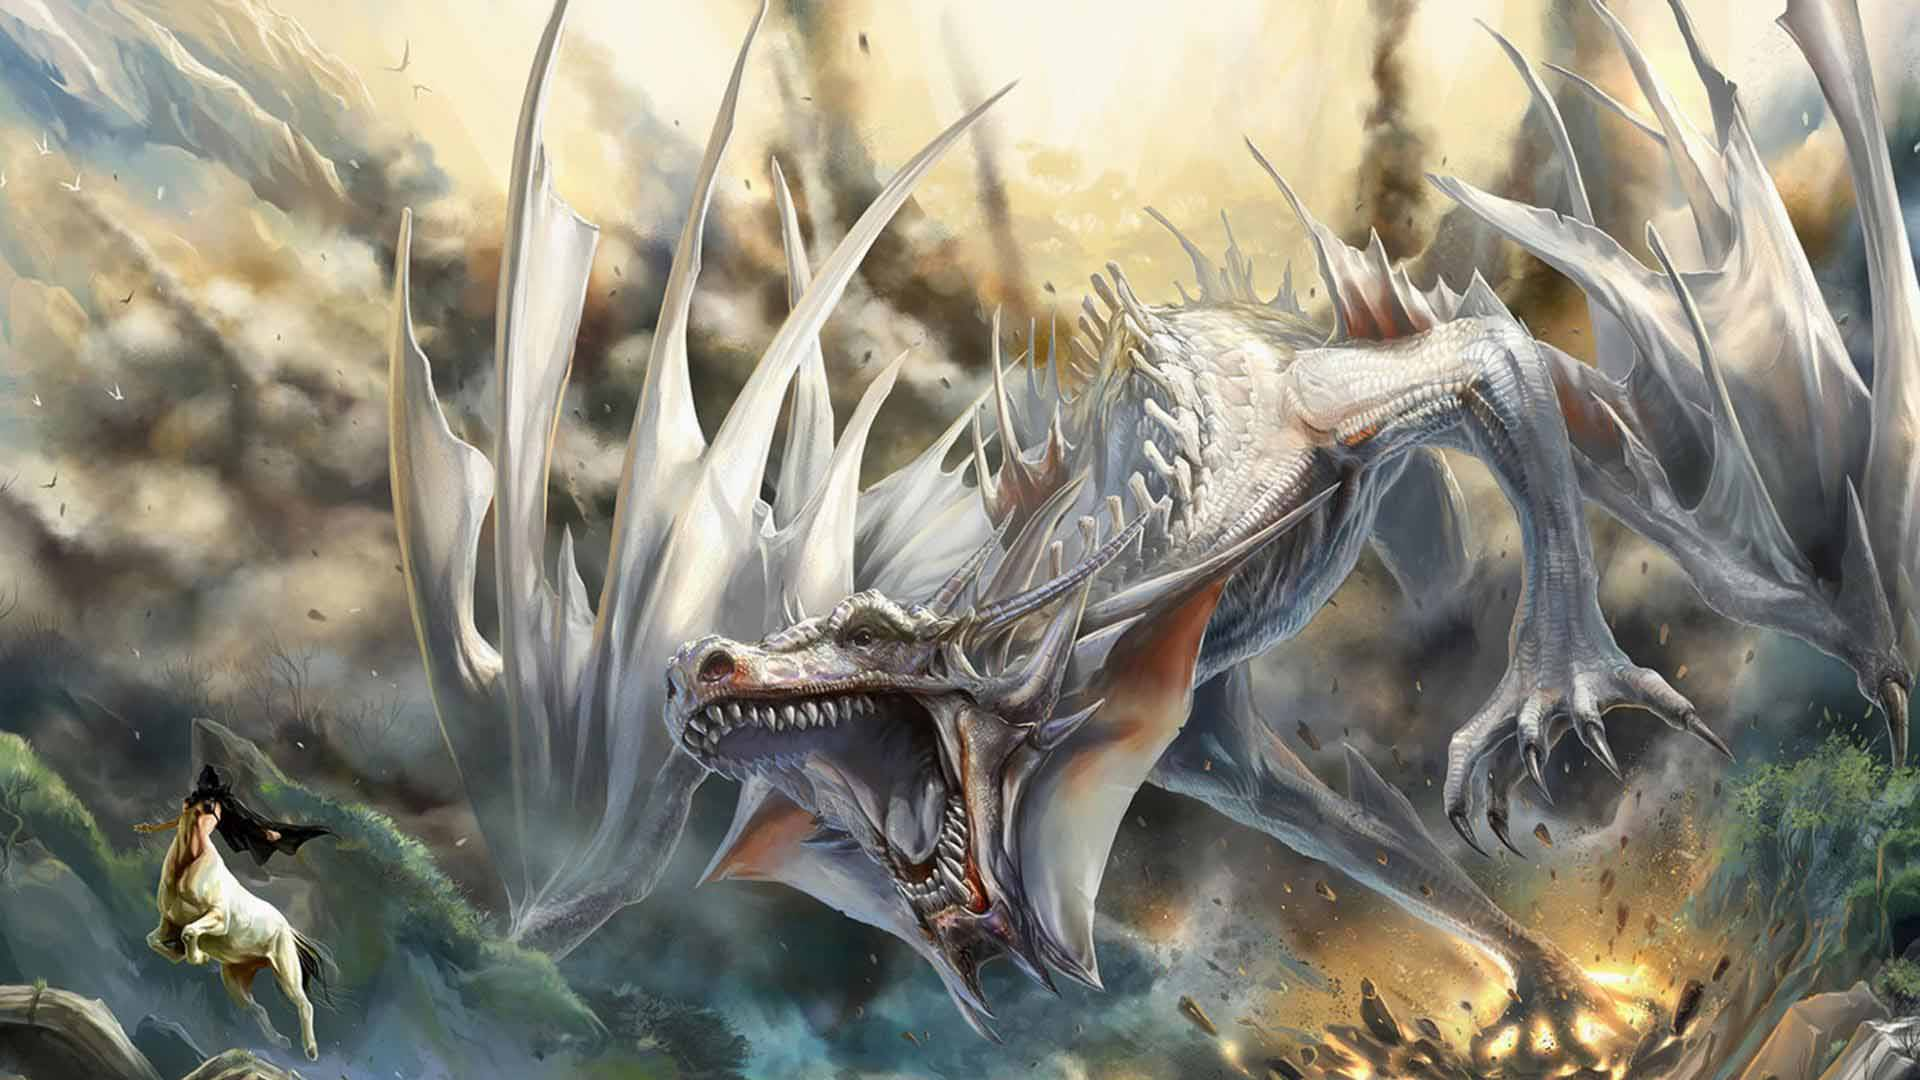 dragon wallpaper widescreen high resolution - photo #44